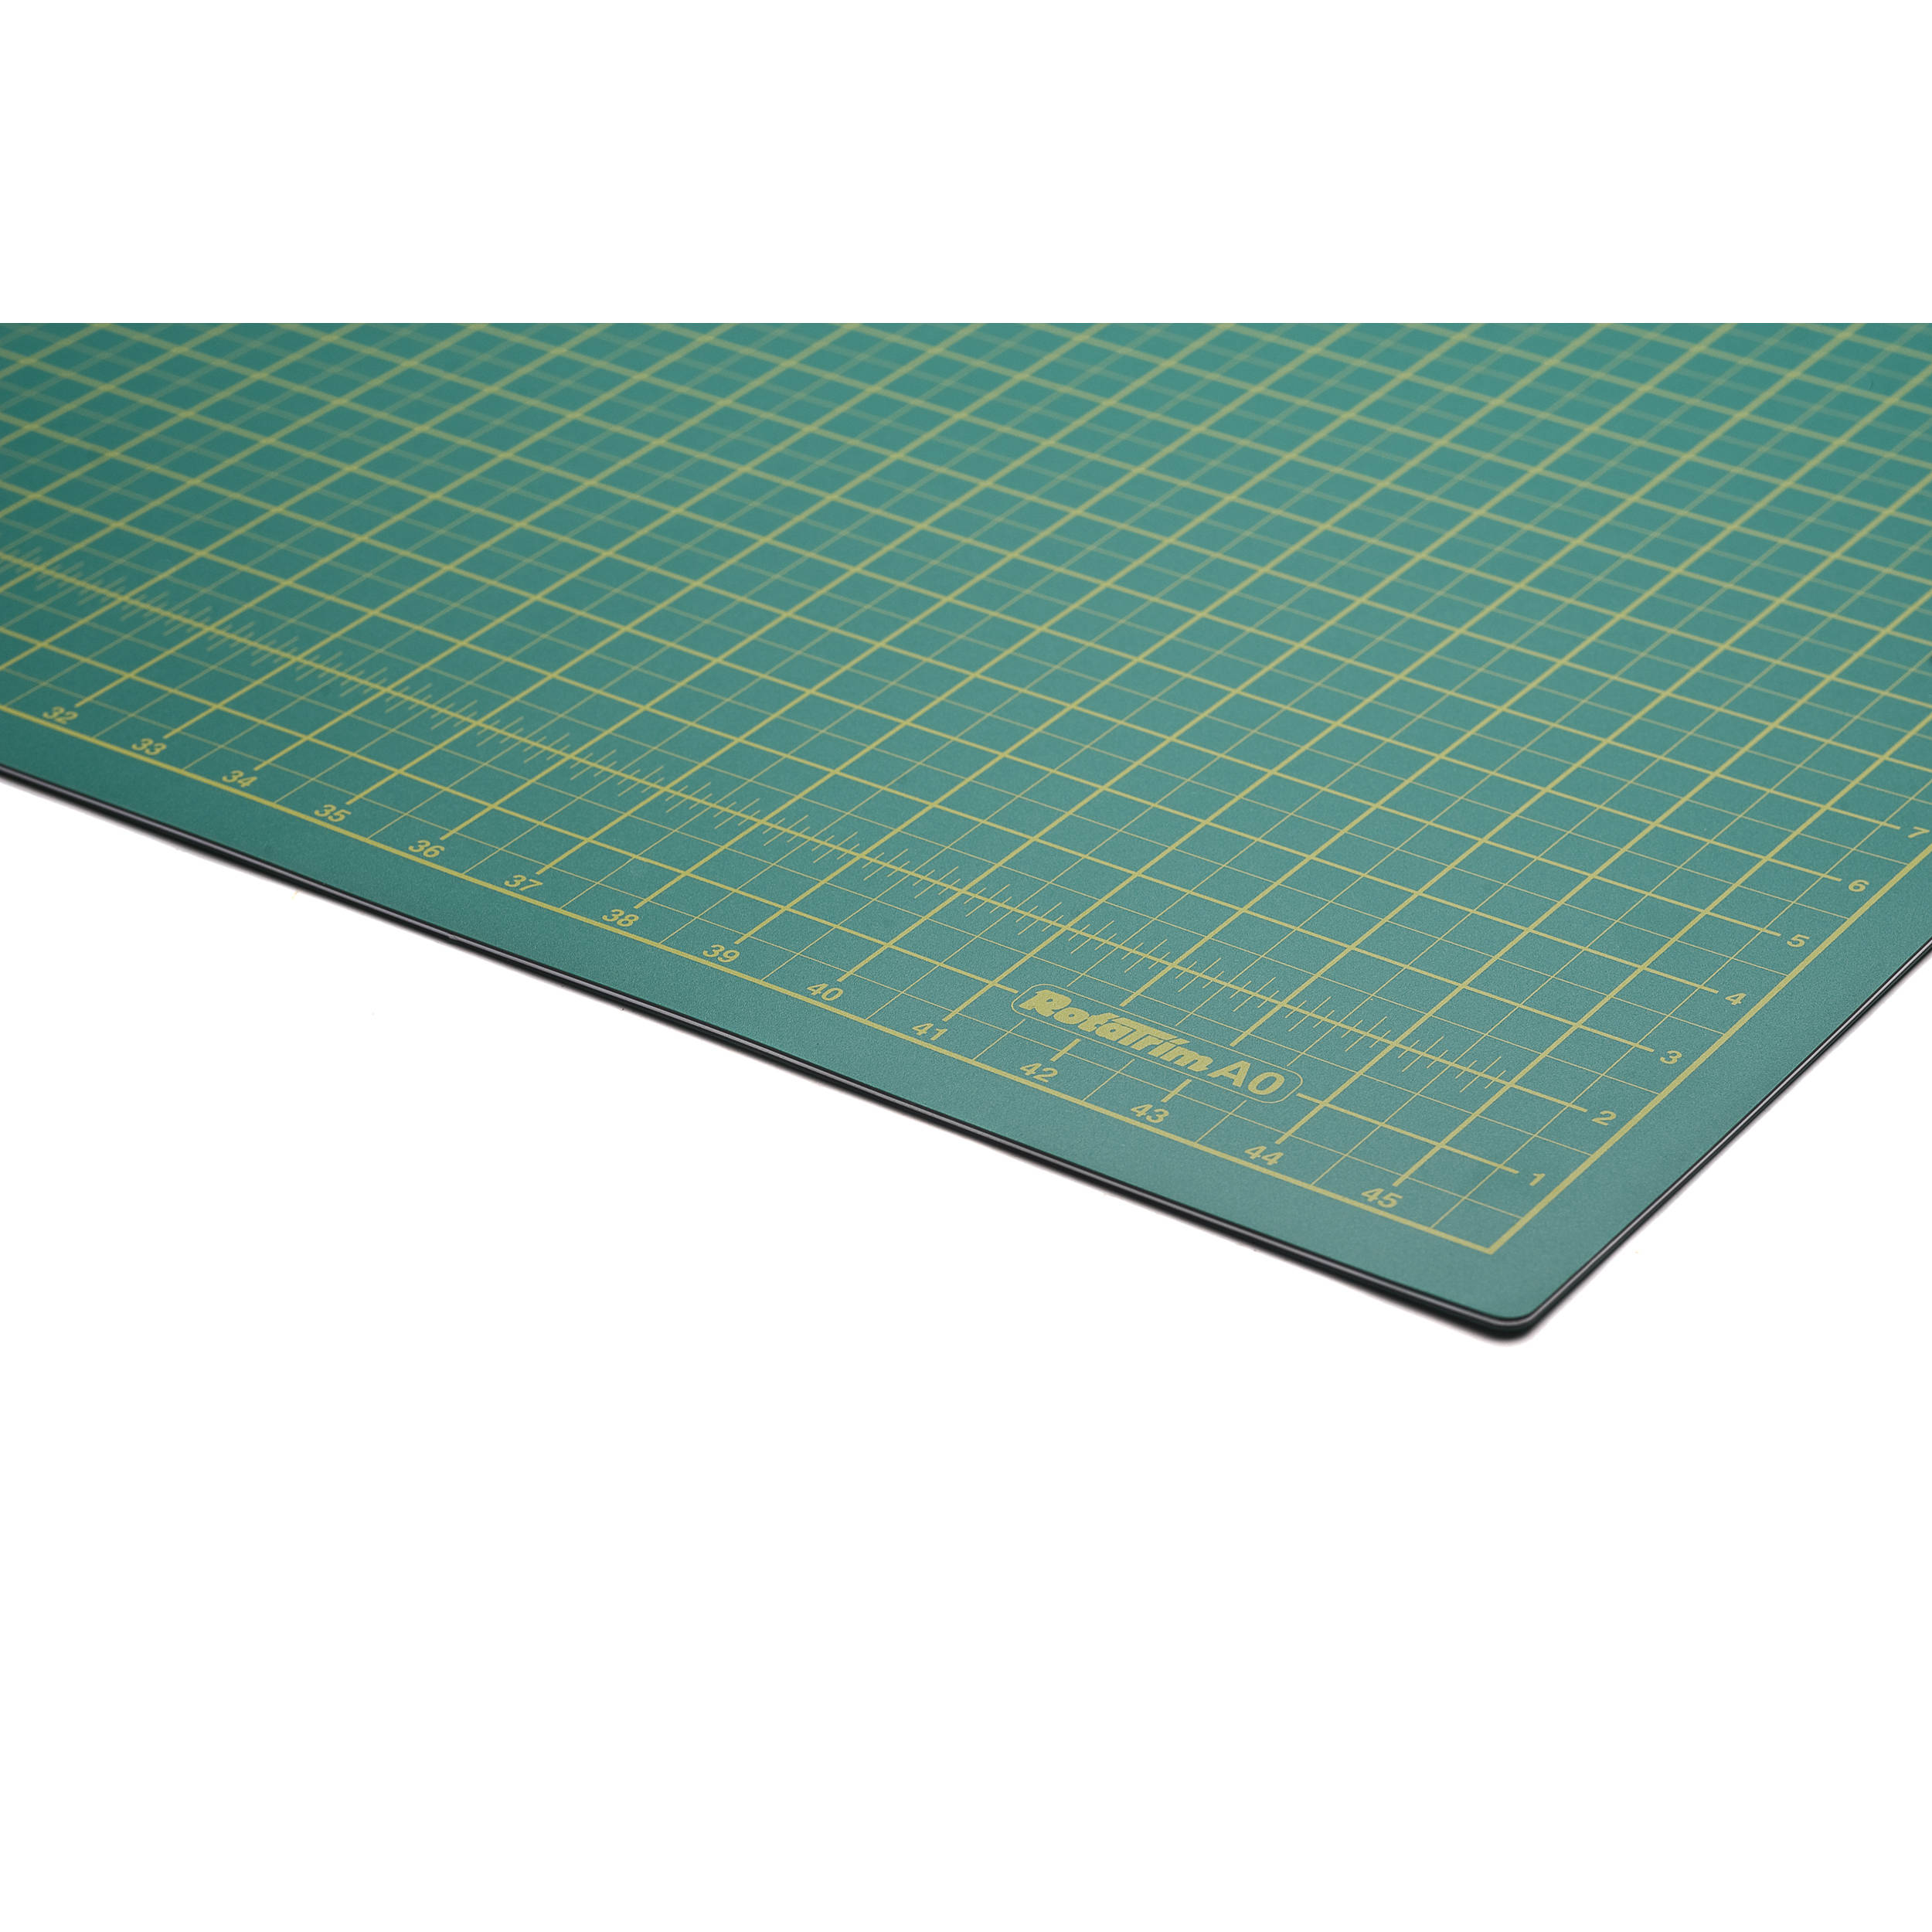 acto knives quilting crafts mat for cutters blue use self scrapbooking amazon bee green healing with cutting com in and dp rotary x